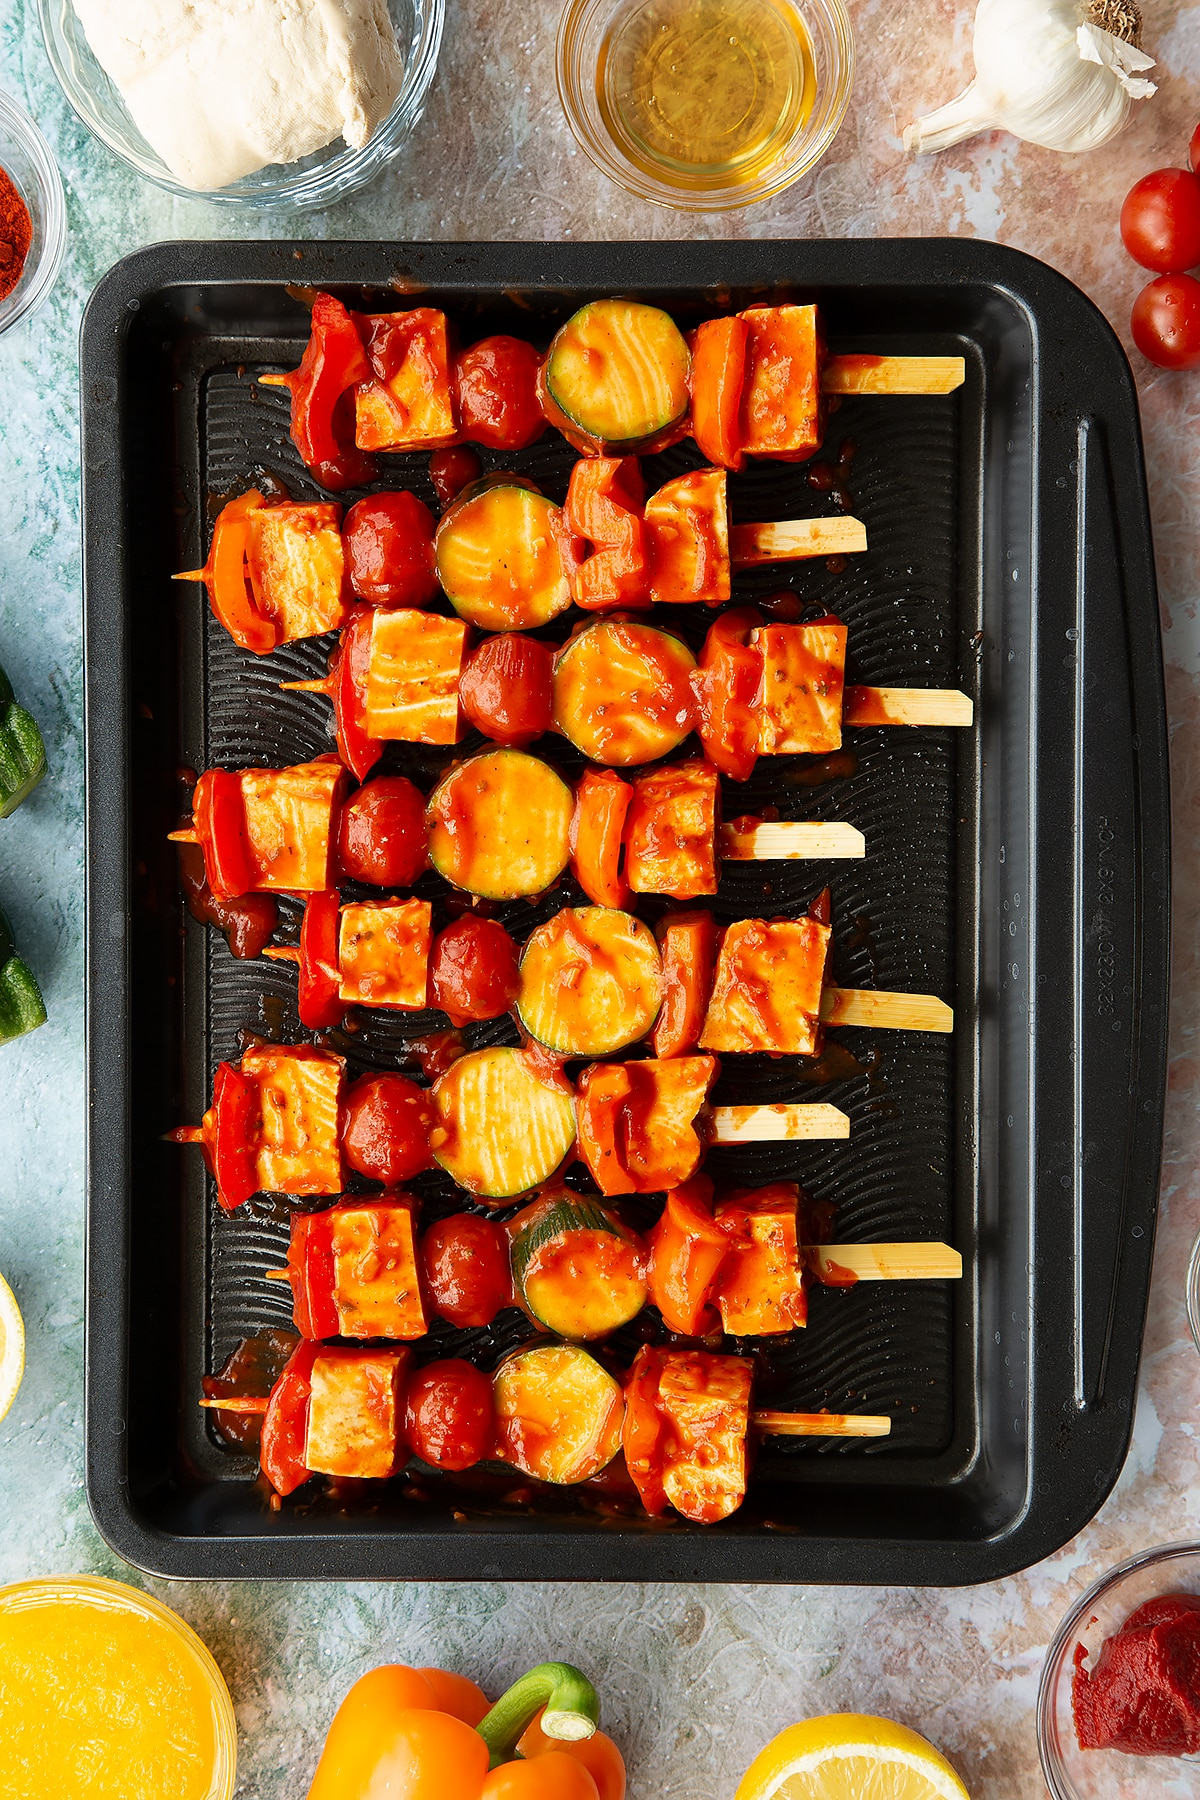 Tofu skewers lined up, brushed with marinade and ready to cook on a baking tray.